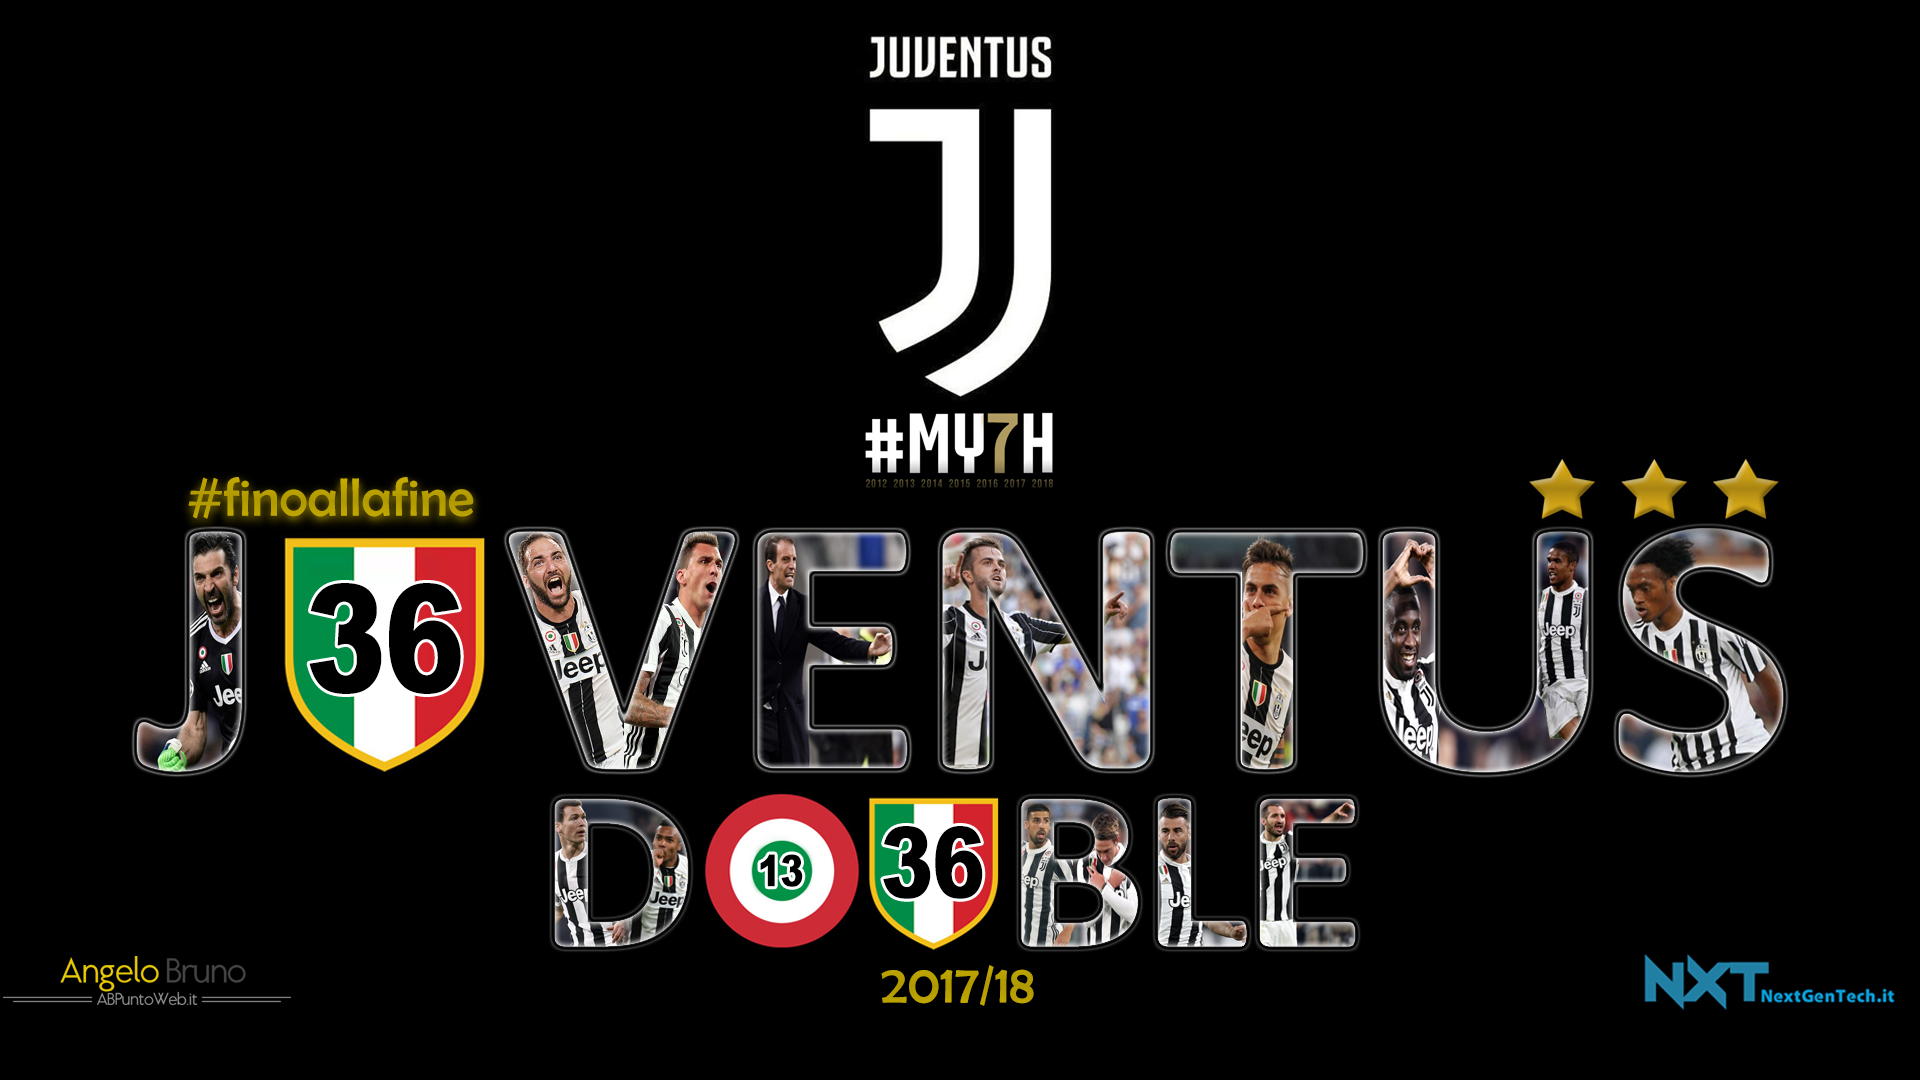 Juventus wallpaper 2017 18 full hd angelo bruno abpuntoweb for Sfondo juventus hd